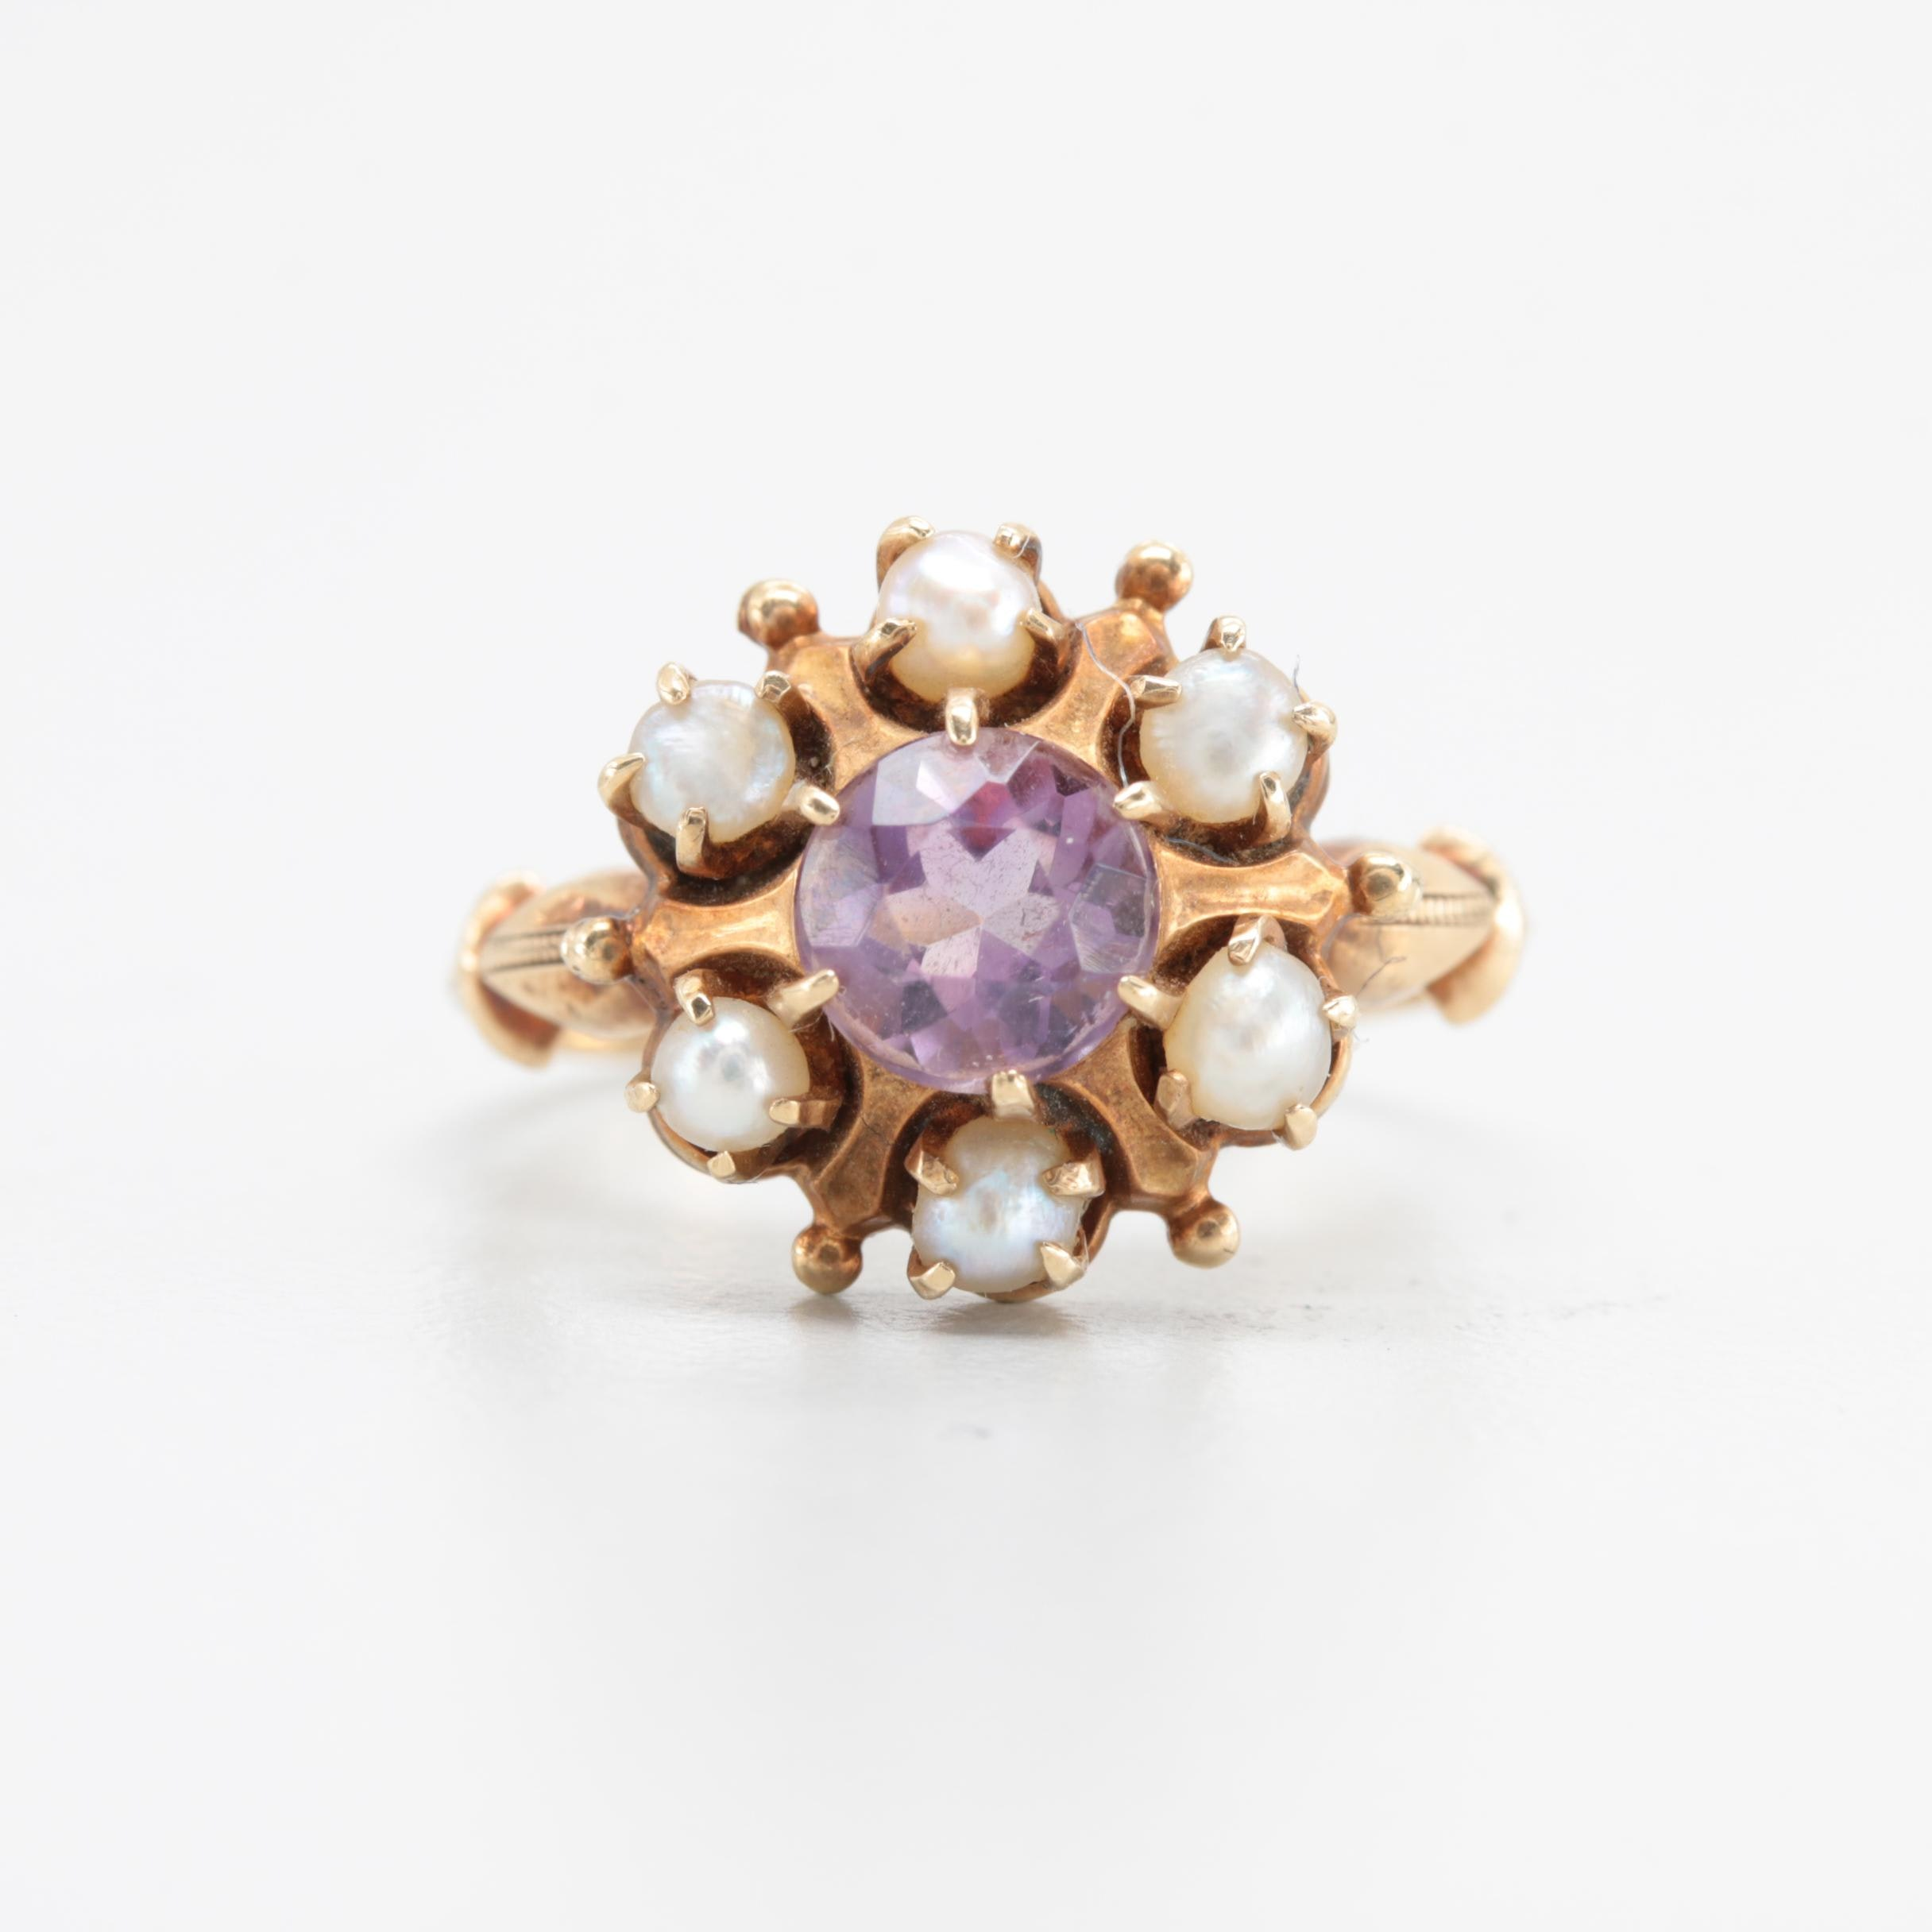 Antique 10K Yellow Gold Amethyst and Cultured Pearl Ring